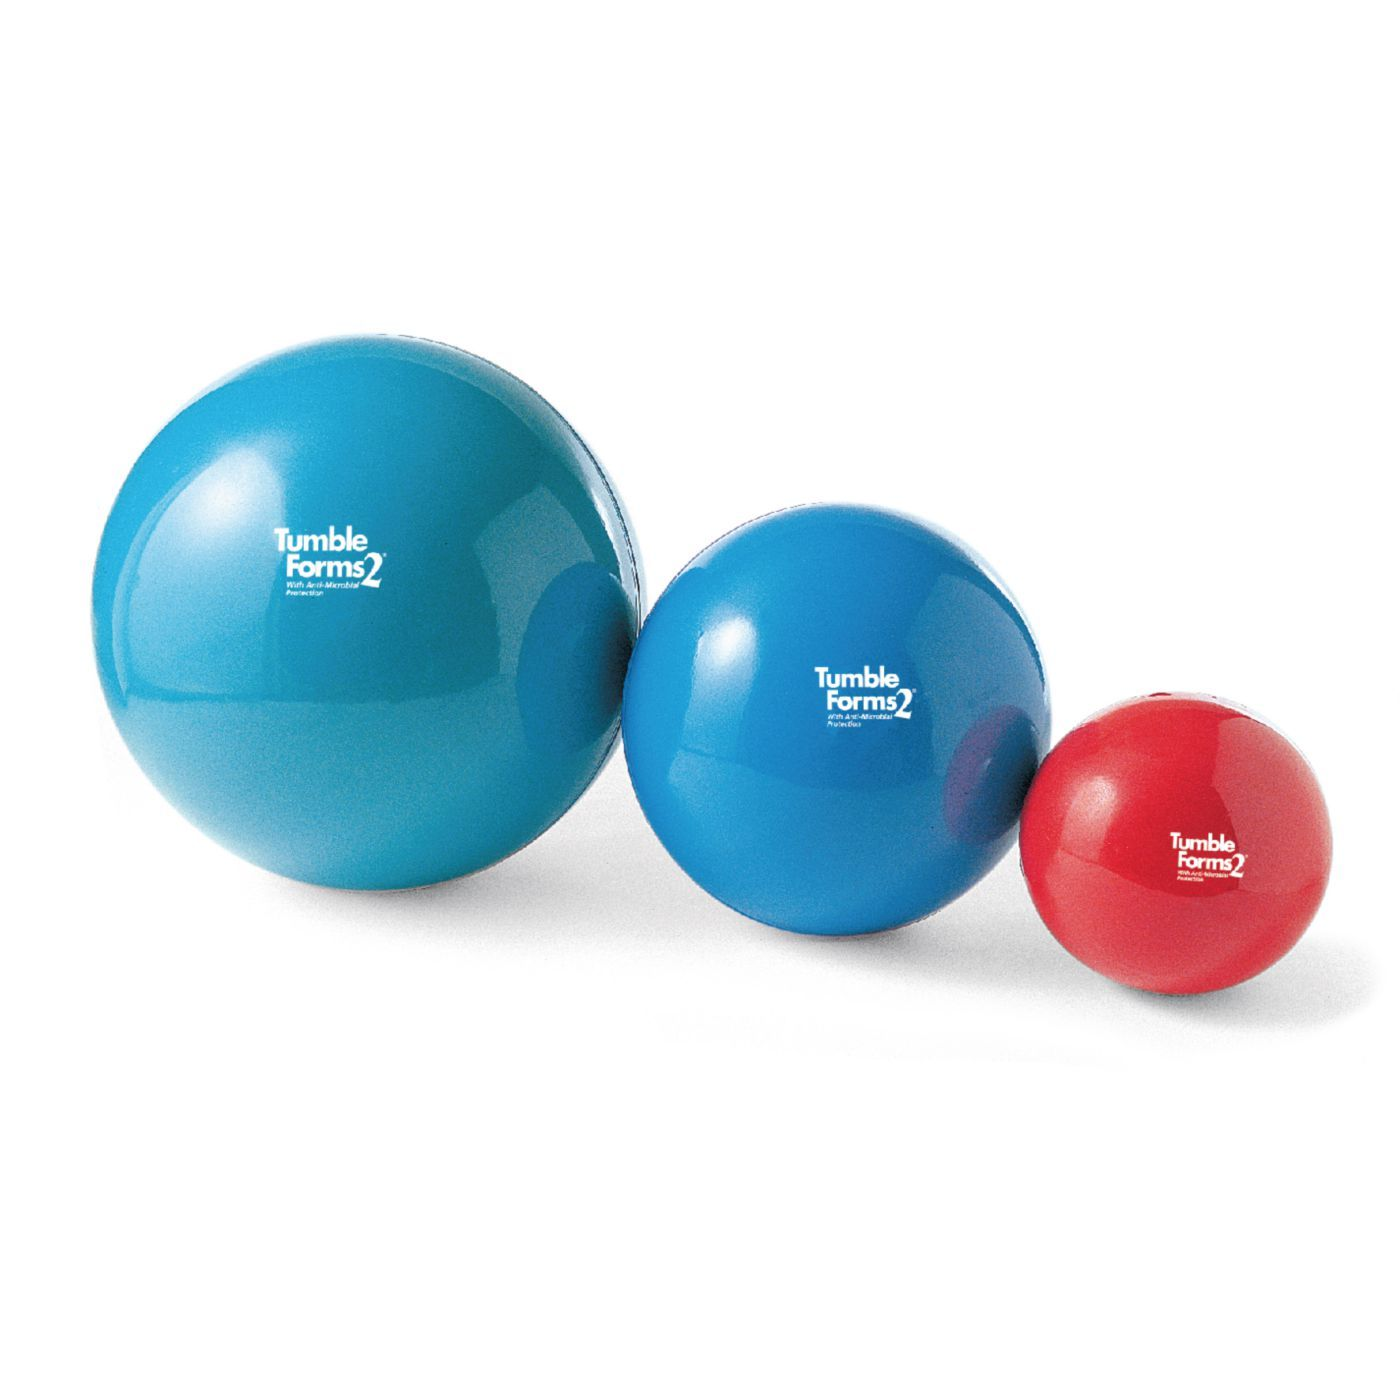 Amazon.com: Tumble Forms2 Rolls, Multiple Sizes, Therapy ...